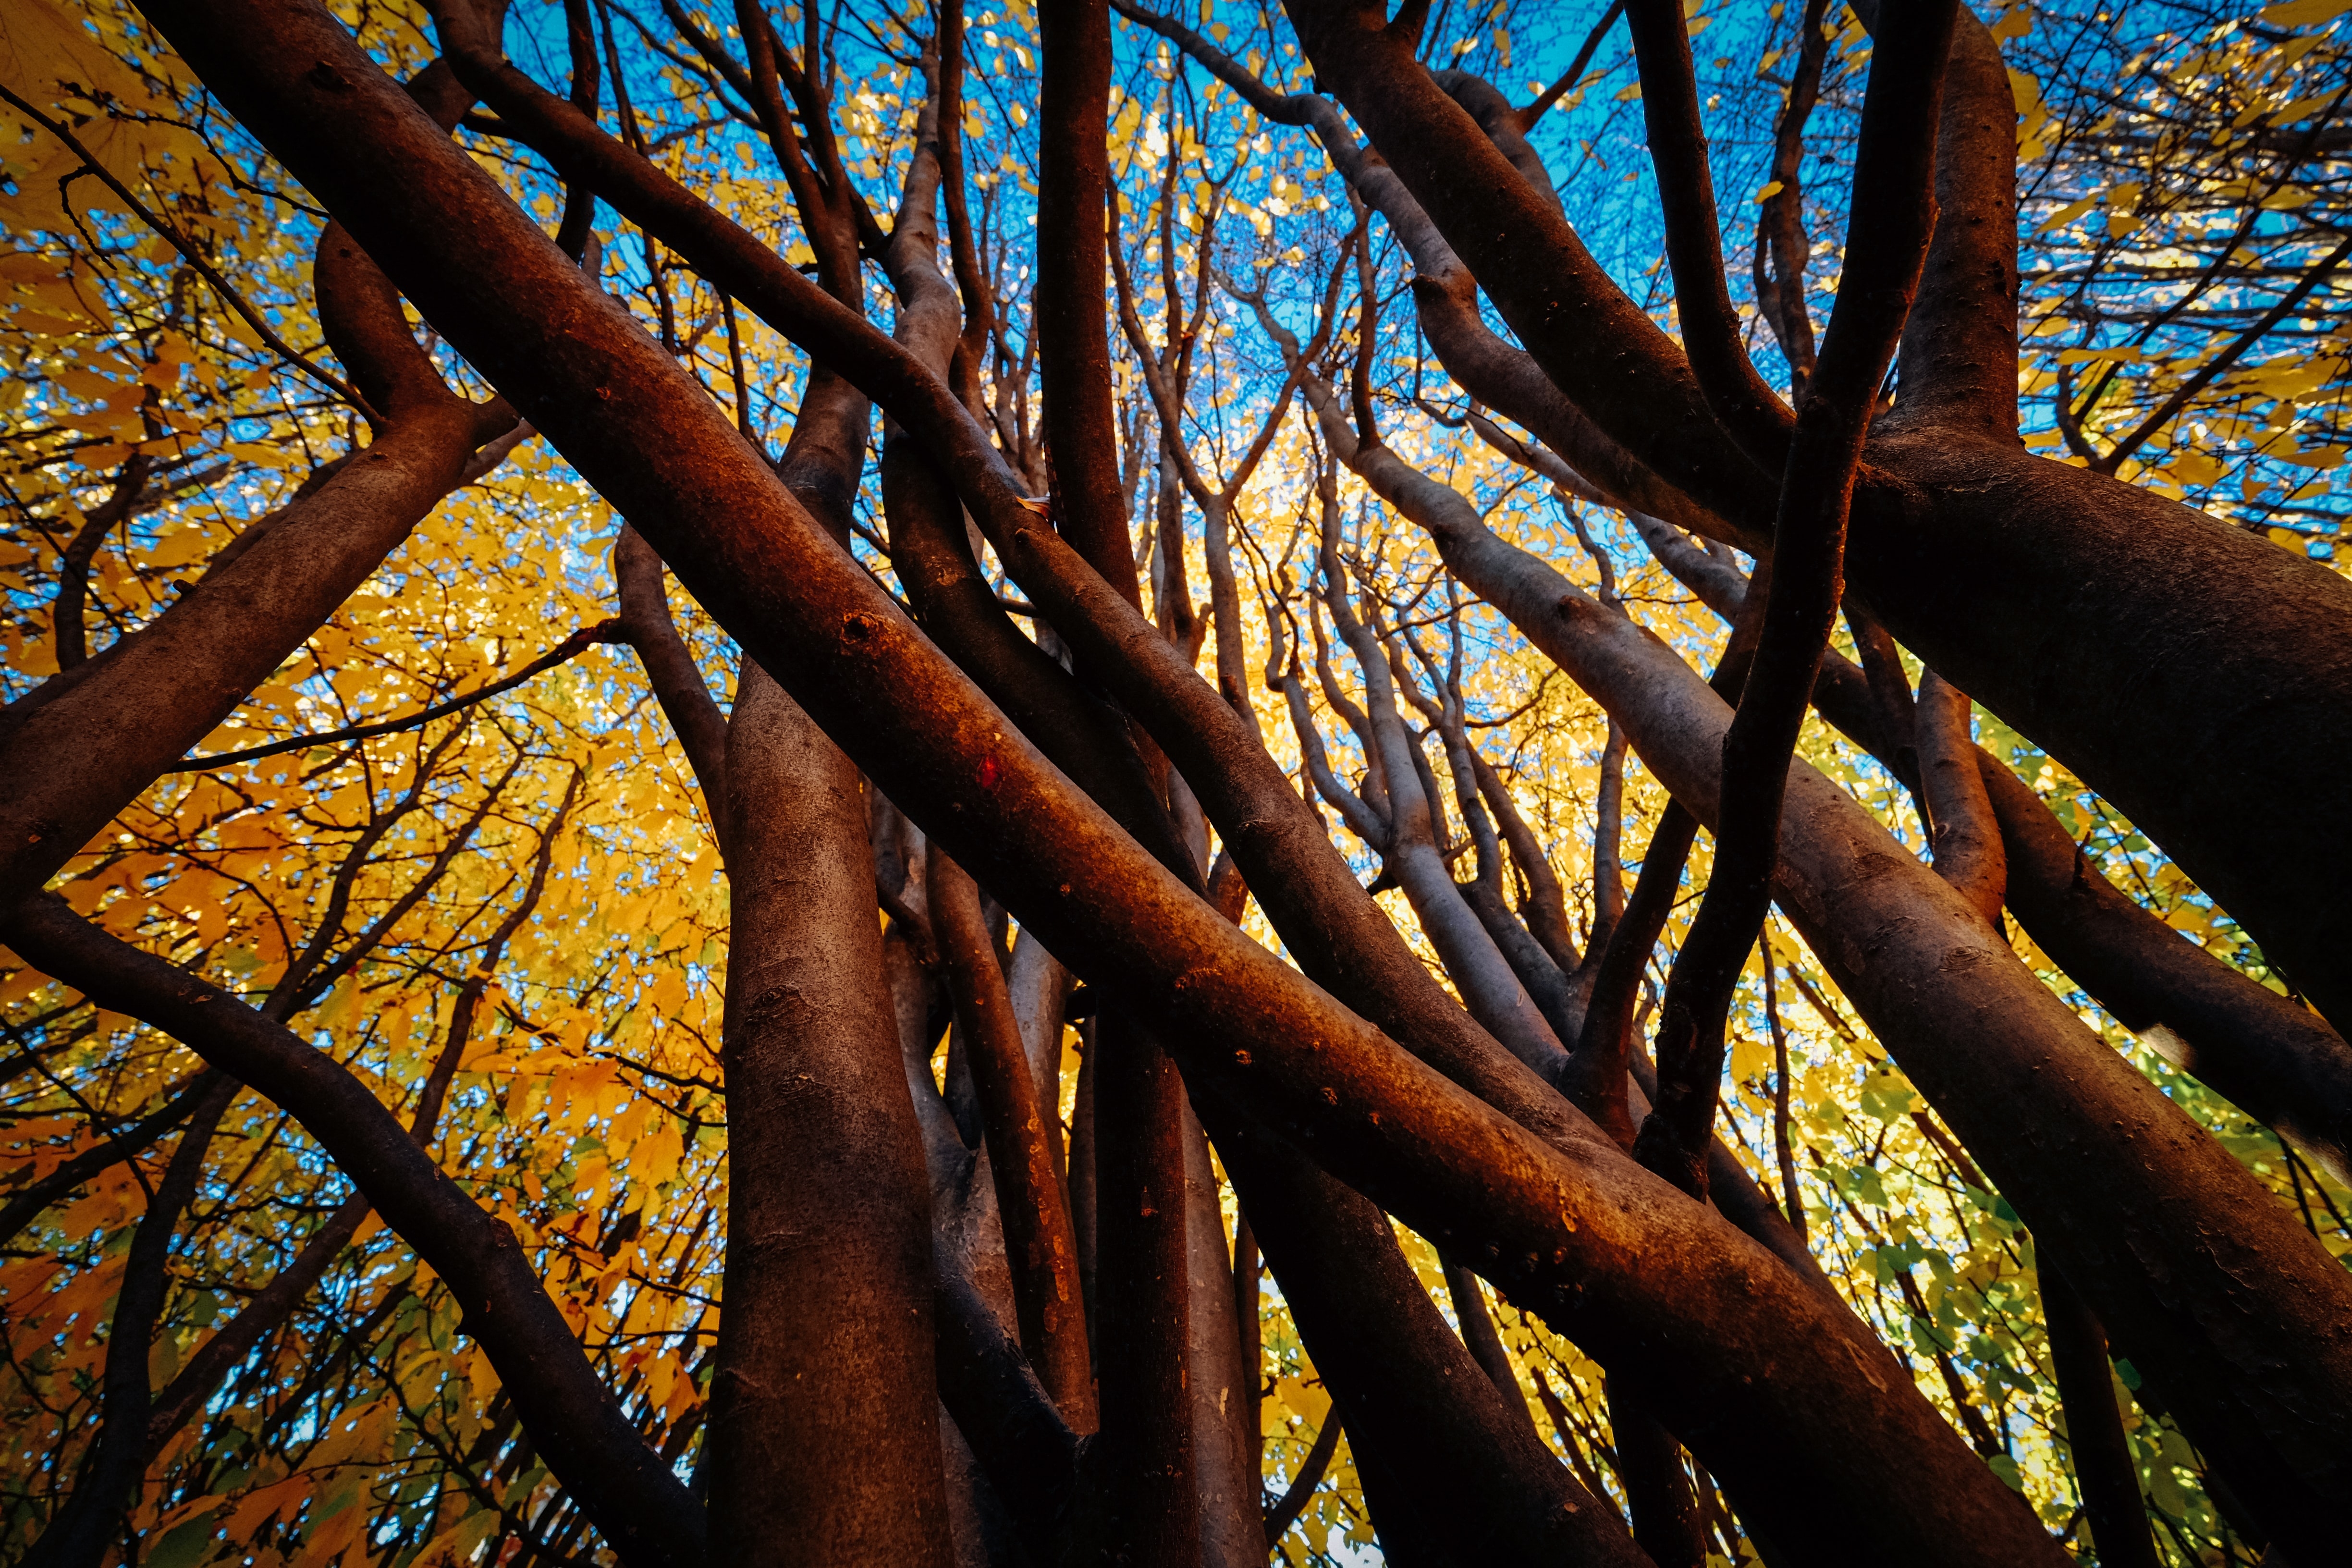 worm's eye view of brown and yellow trees